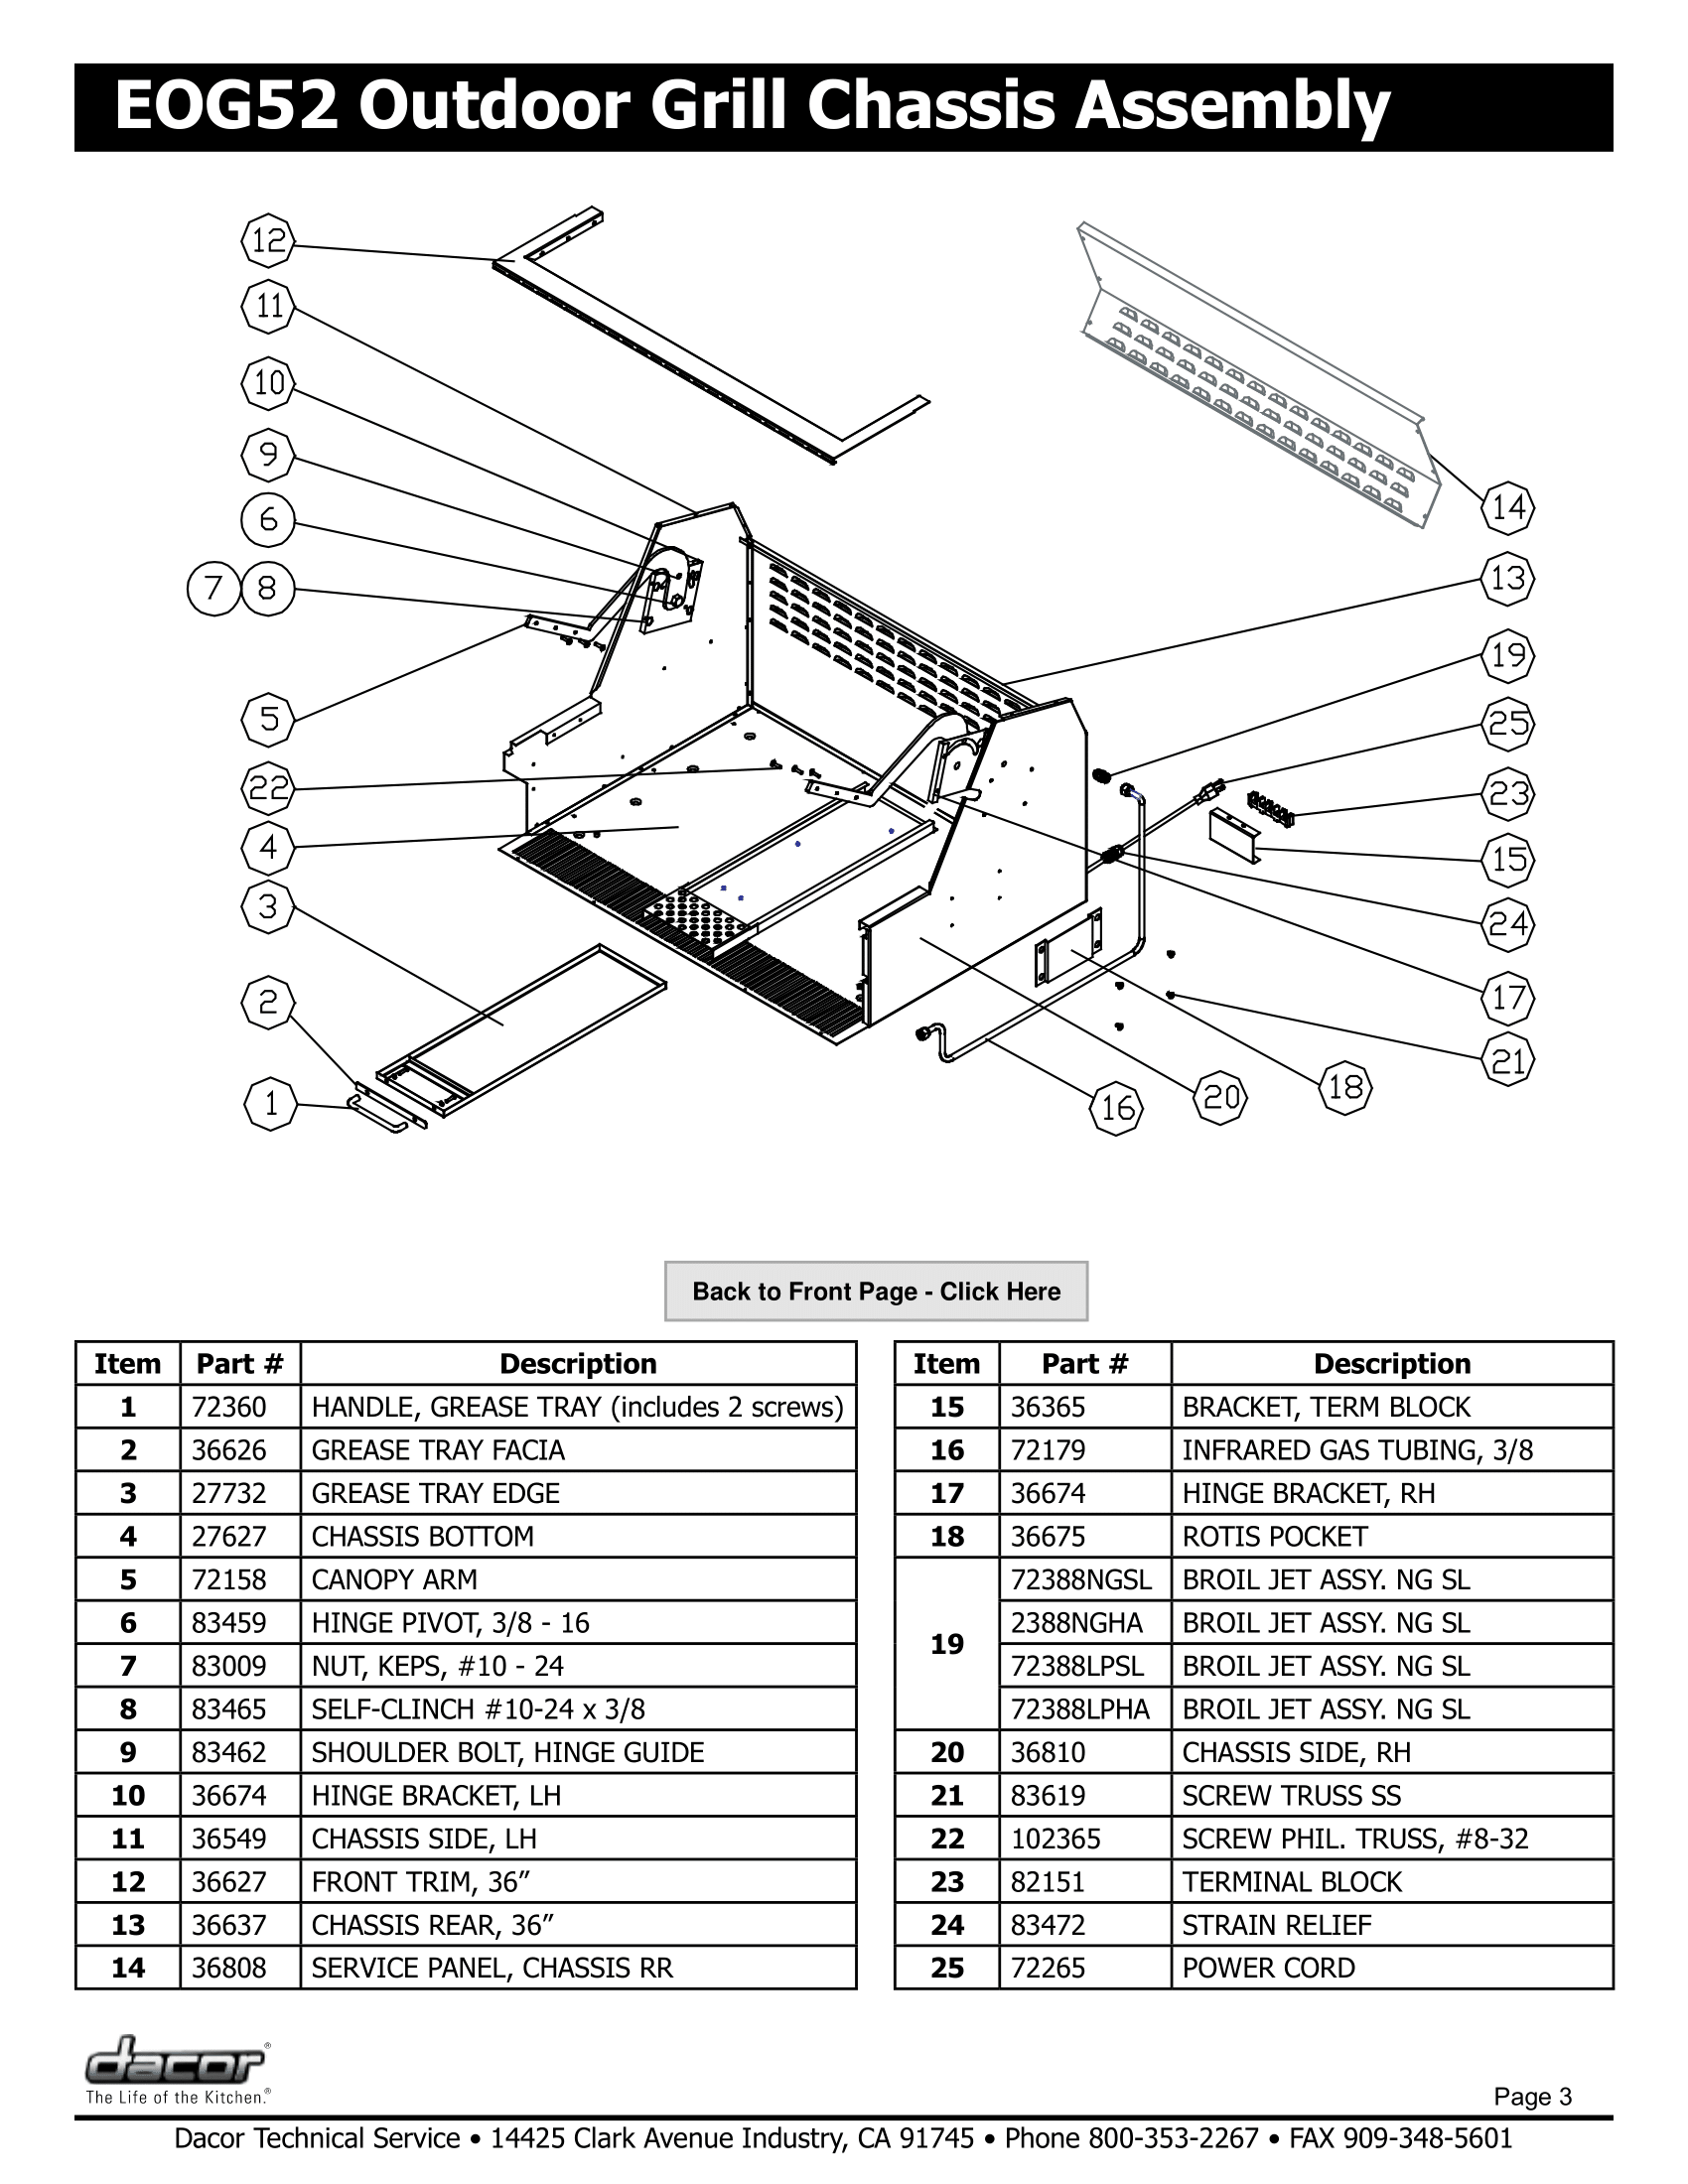 Dacor EOG52 Chassis Assembly Schematic